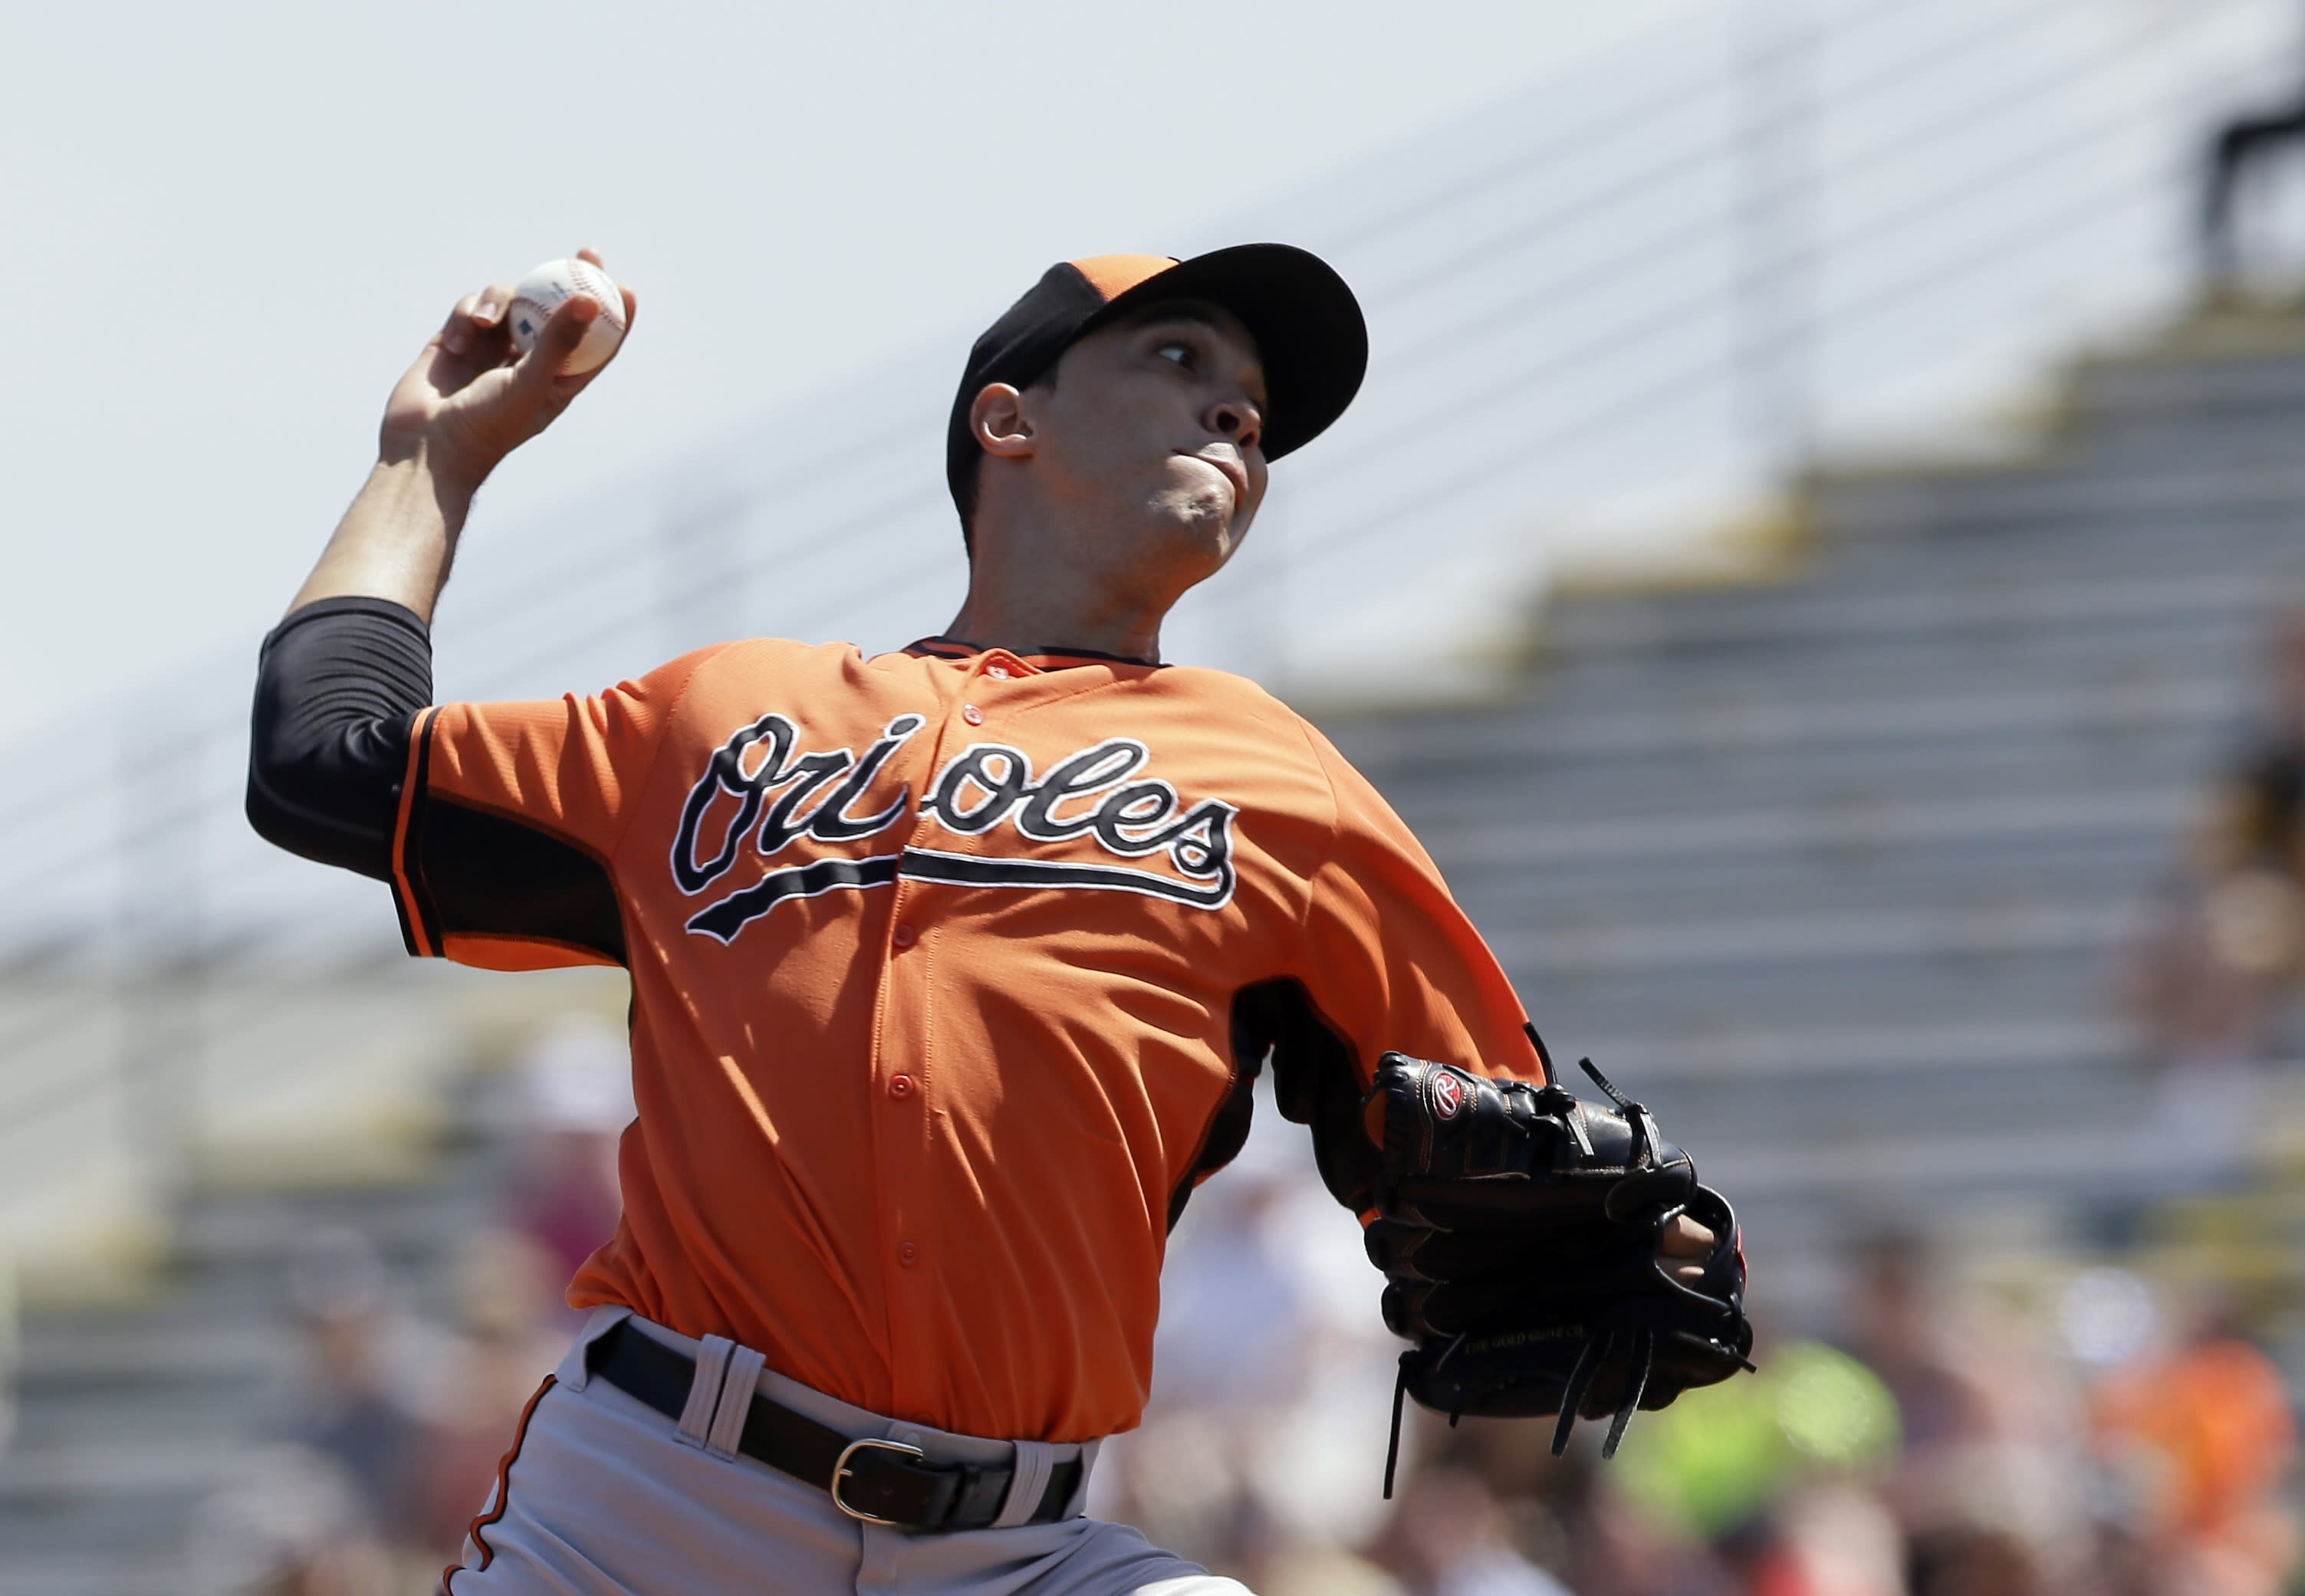 Orioles rely on pitching in bid to repeat as AL East champs